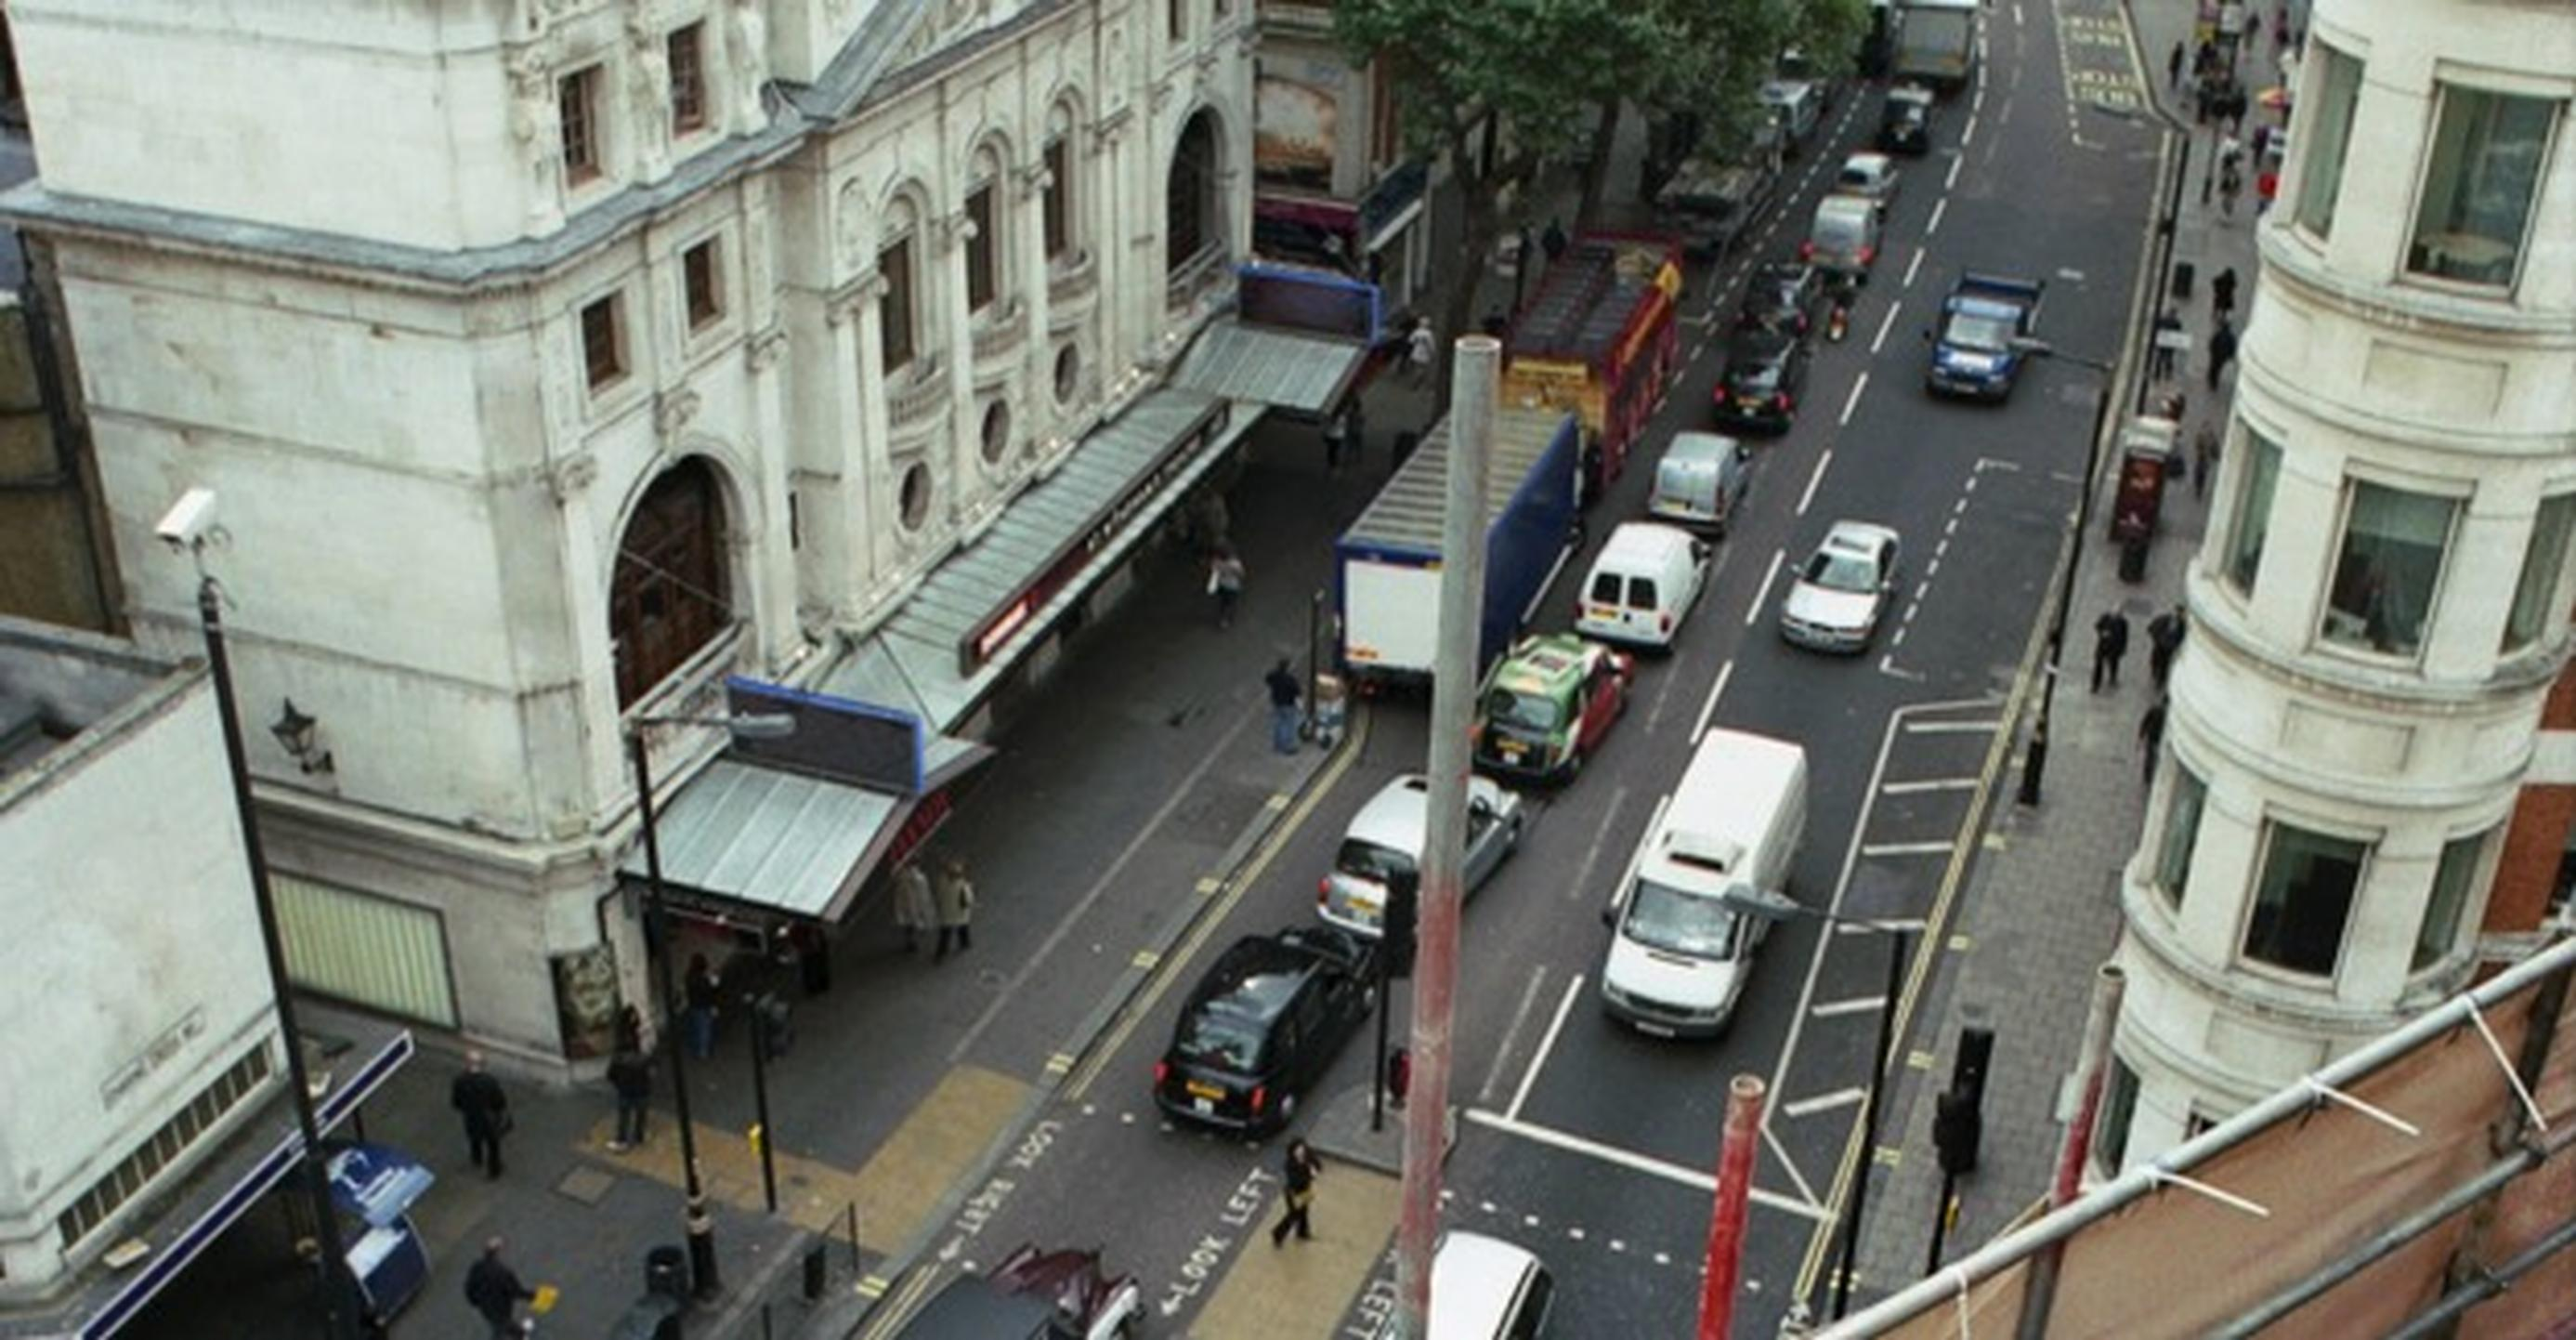 On-street parking surpluses have to be spent on parking and transport schemes